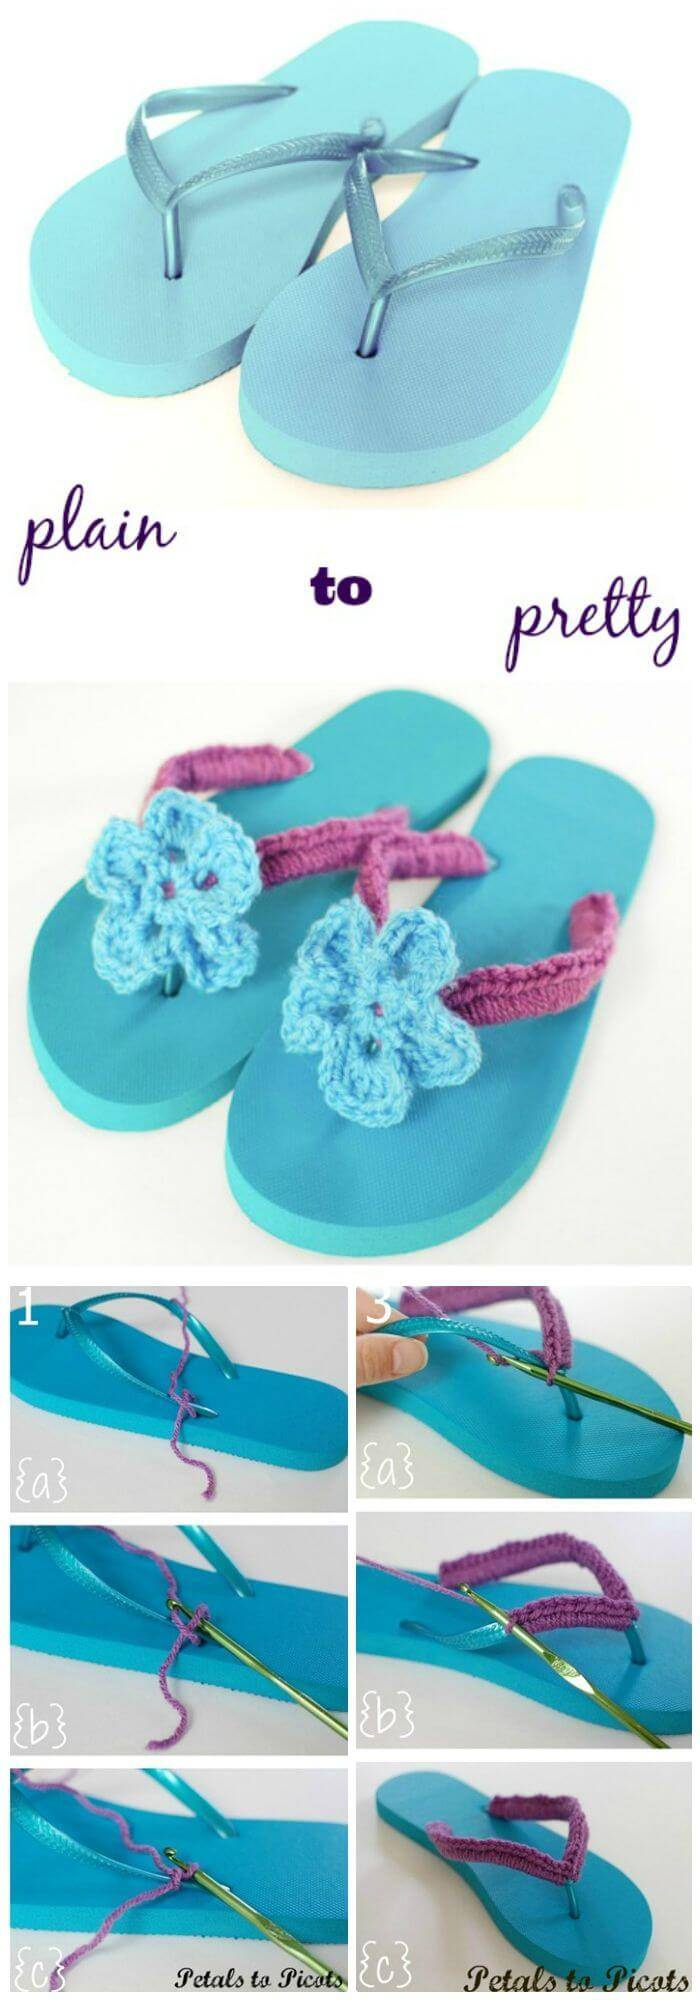 DIY Crochet Flip Flops Tutorial With Flower Pattern, crochet flip flops with free patterns and tutorials